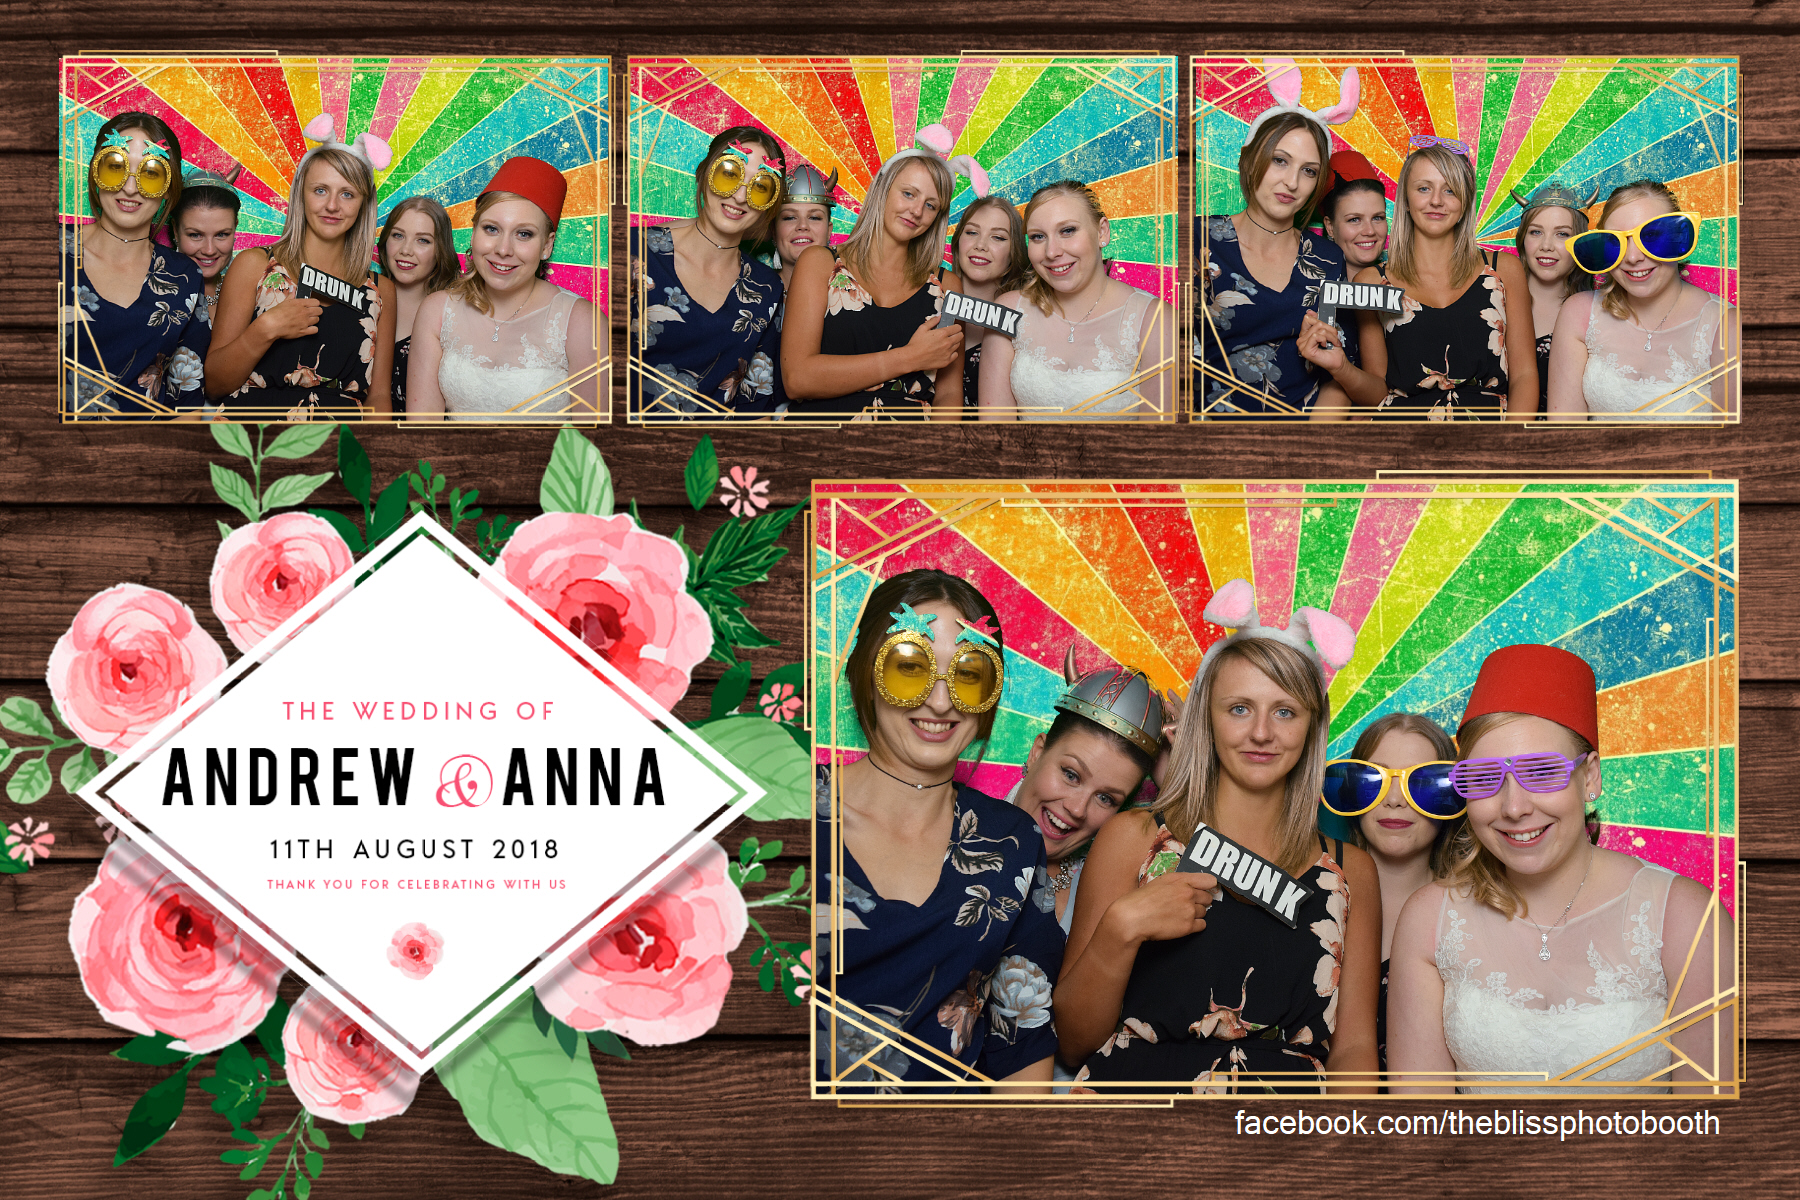 Andrew and Anna - Van Dykes Hotel Worksop - Photo Booth